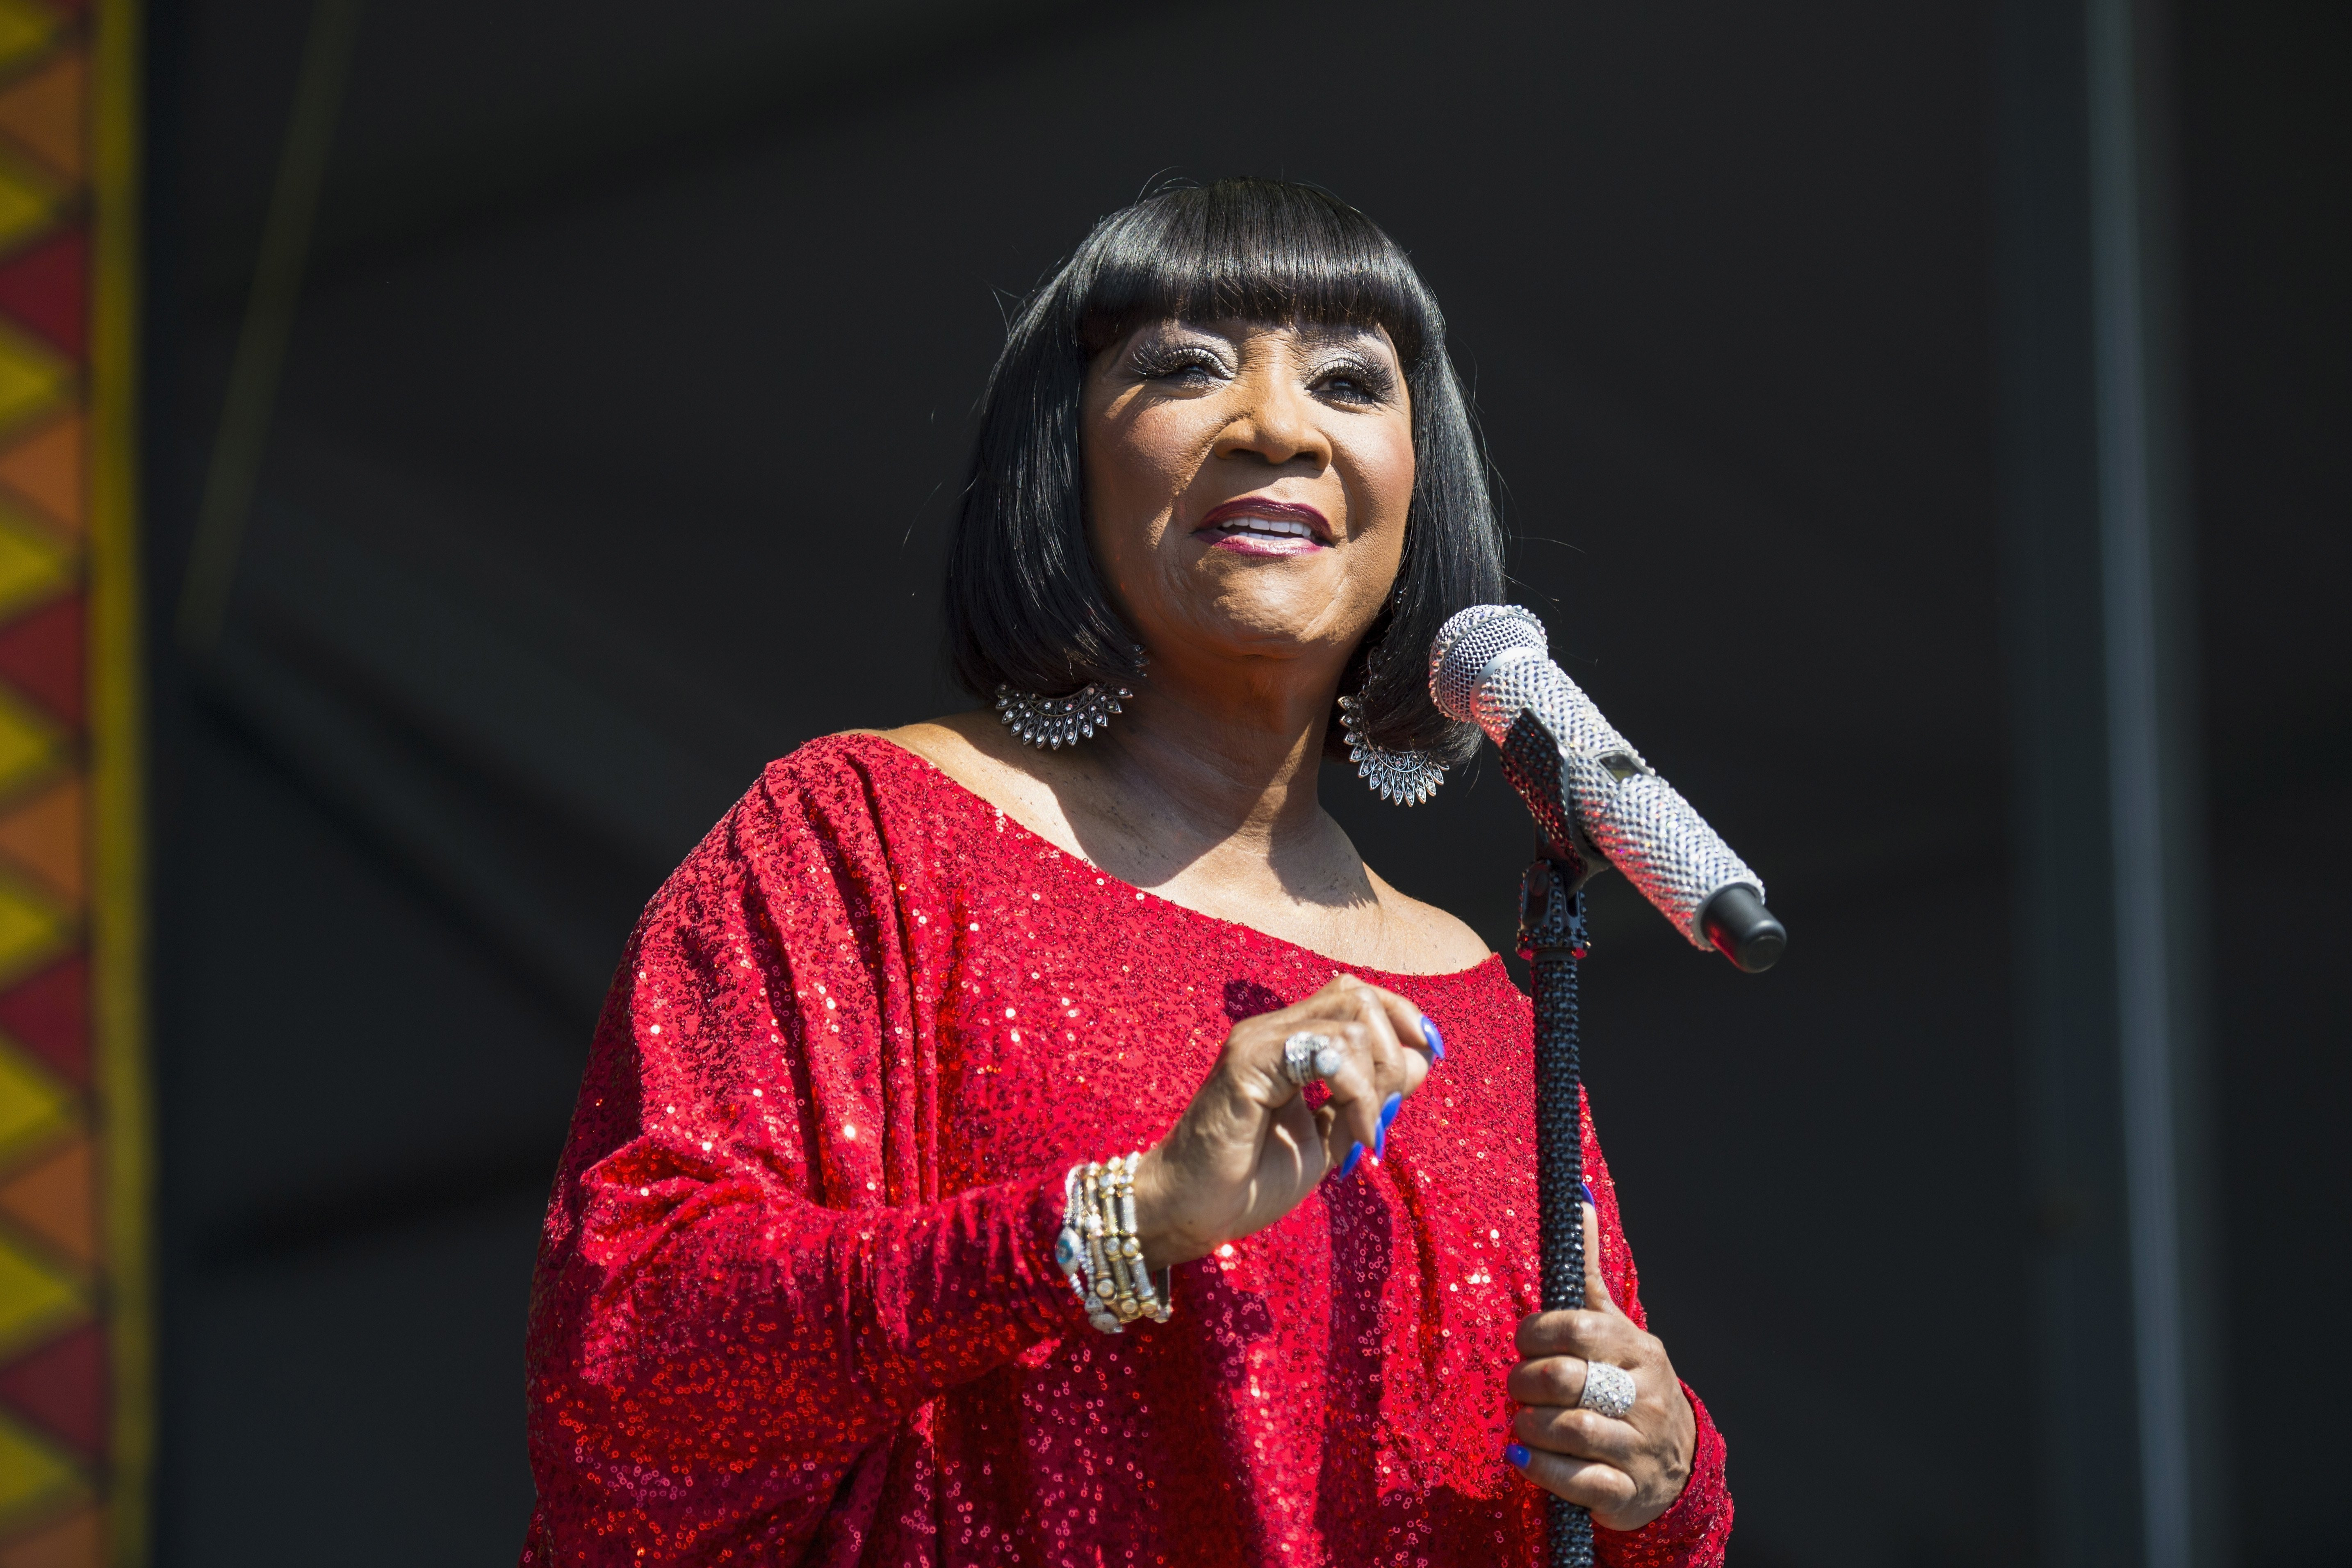 Patti LaBelle performing at the 2017 New Orleans Jazz & Heritage Festival.   Photo: Getty Images